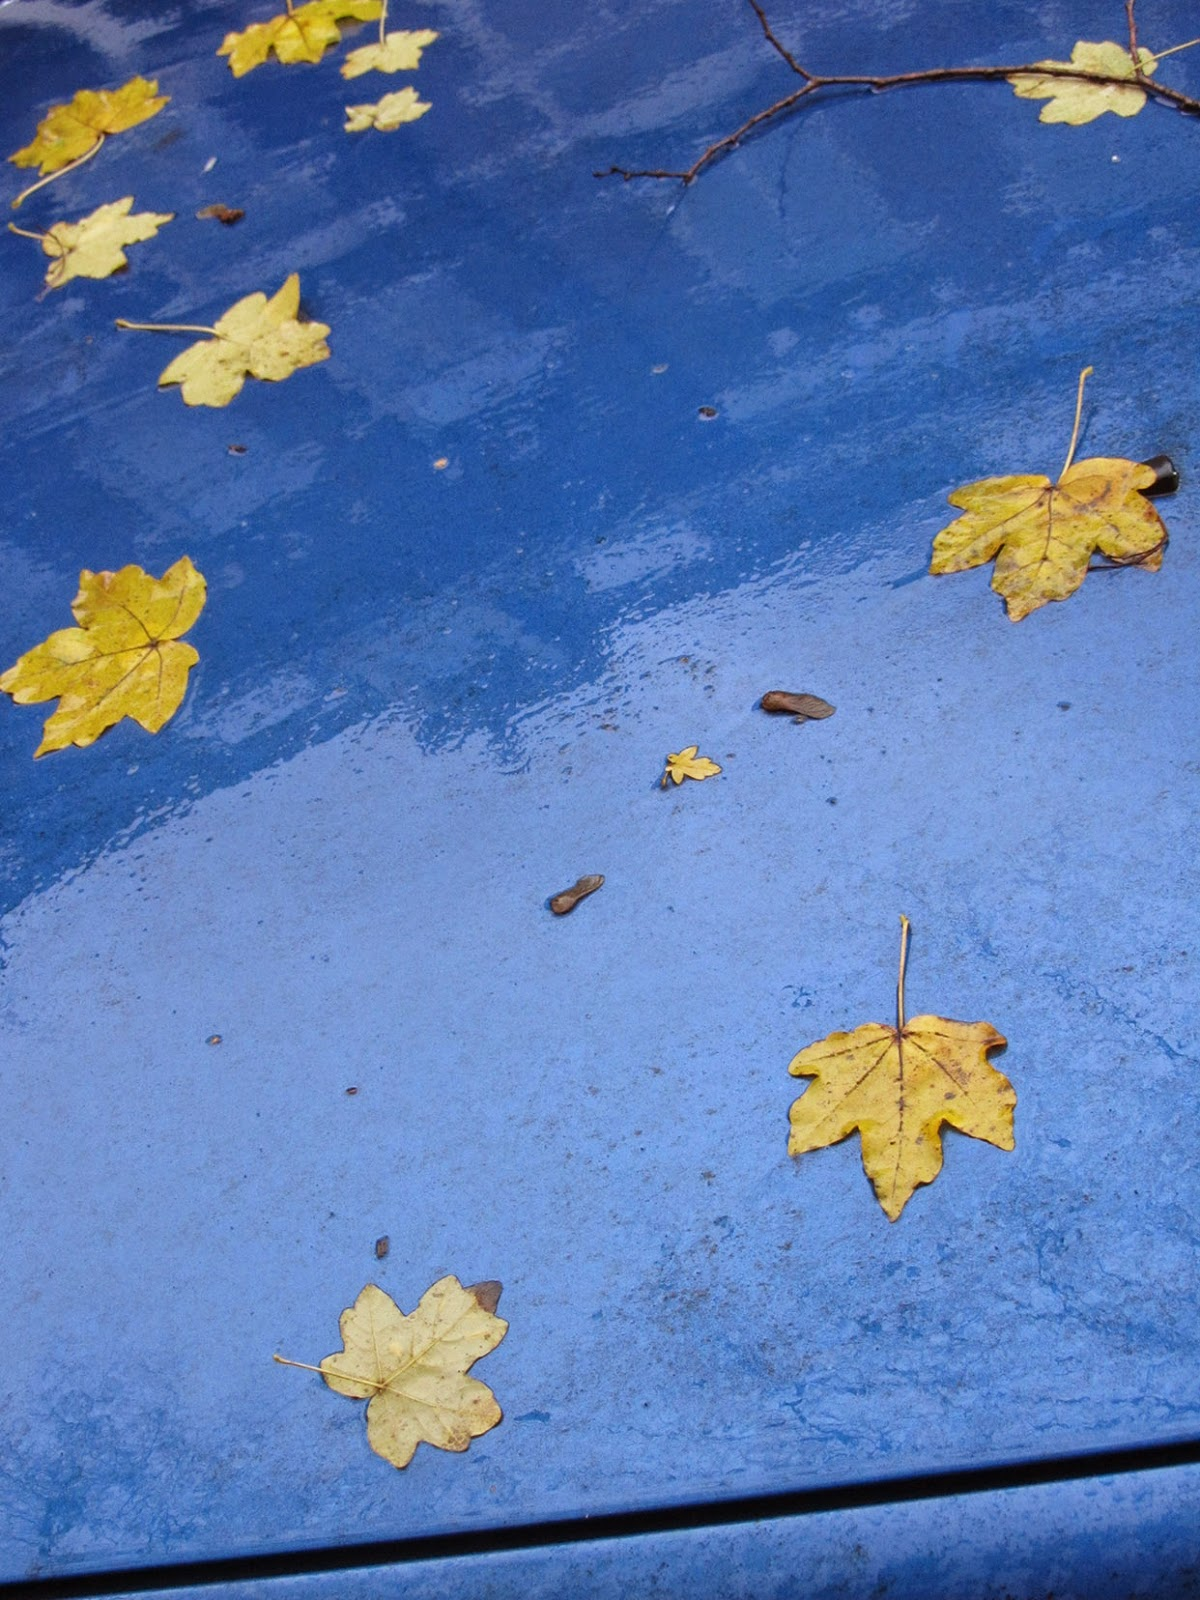 leaves on a blue car